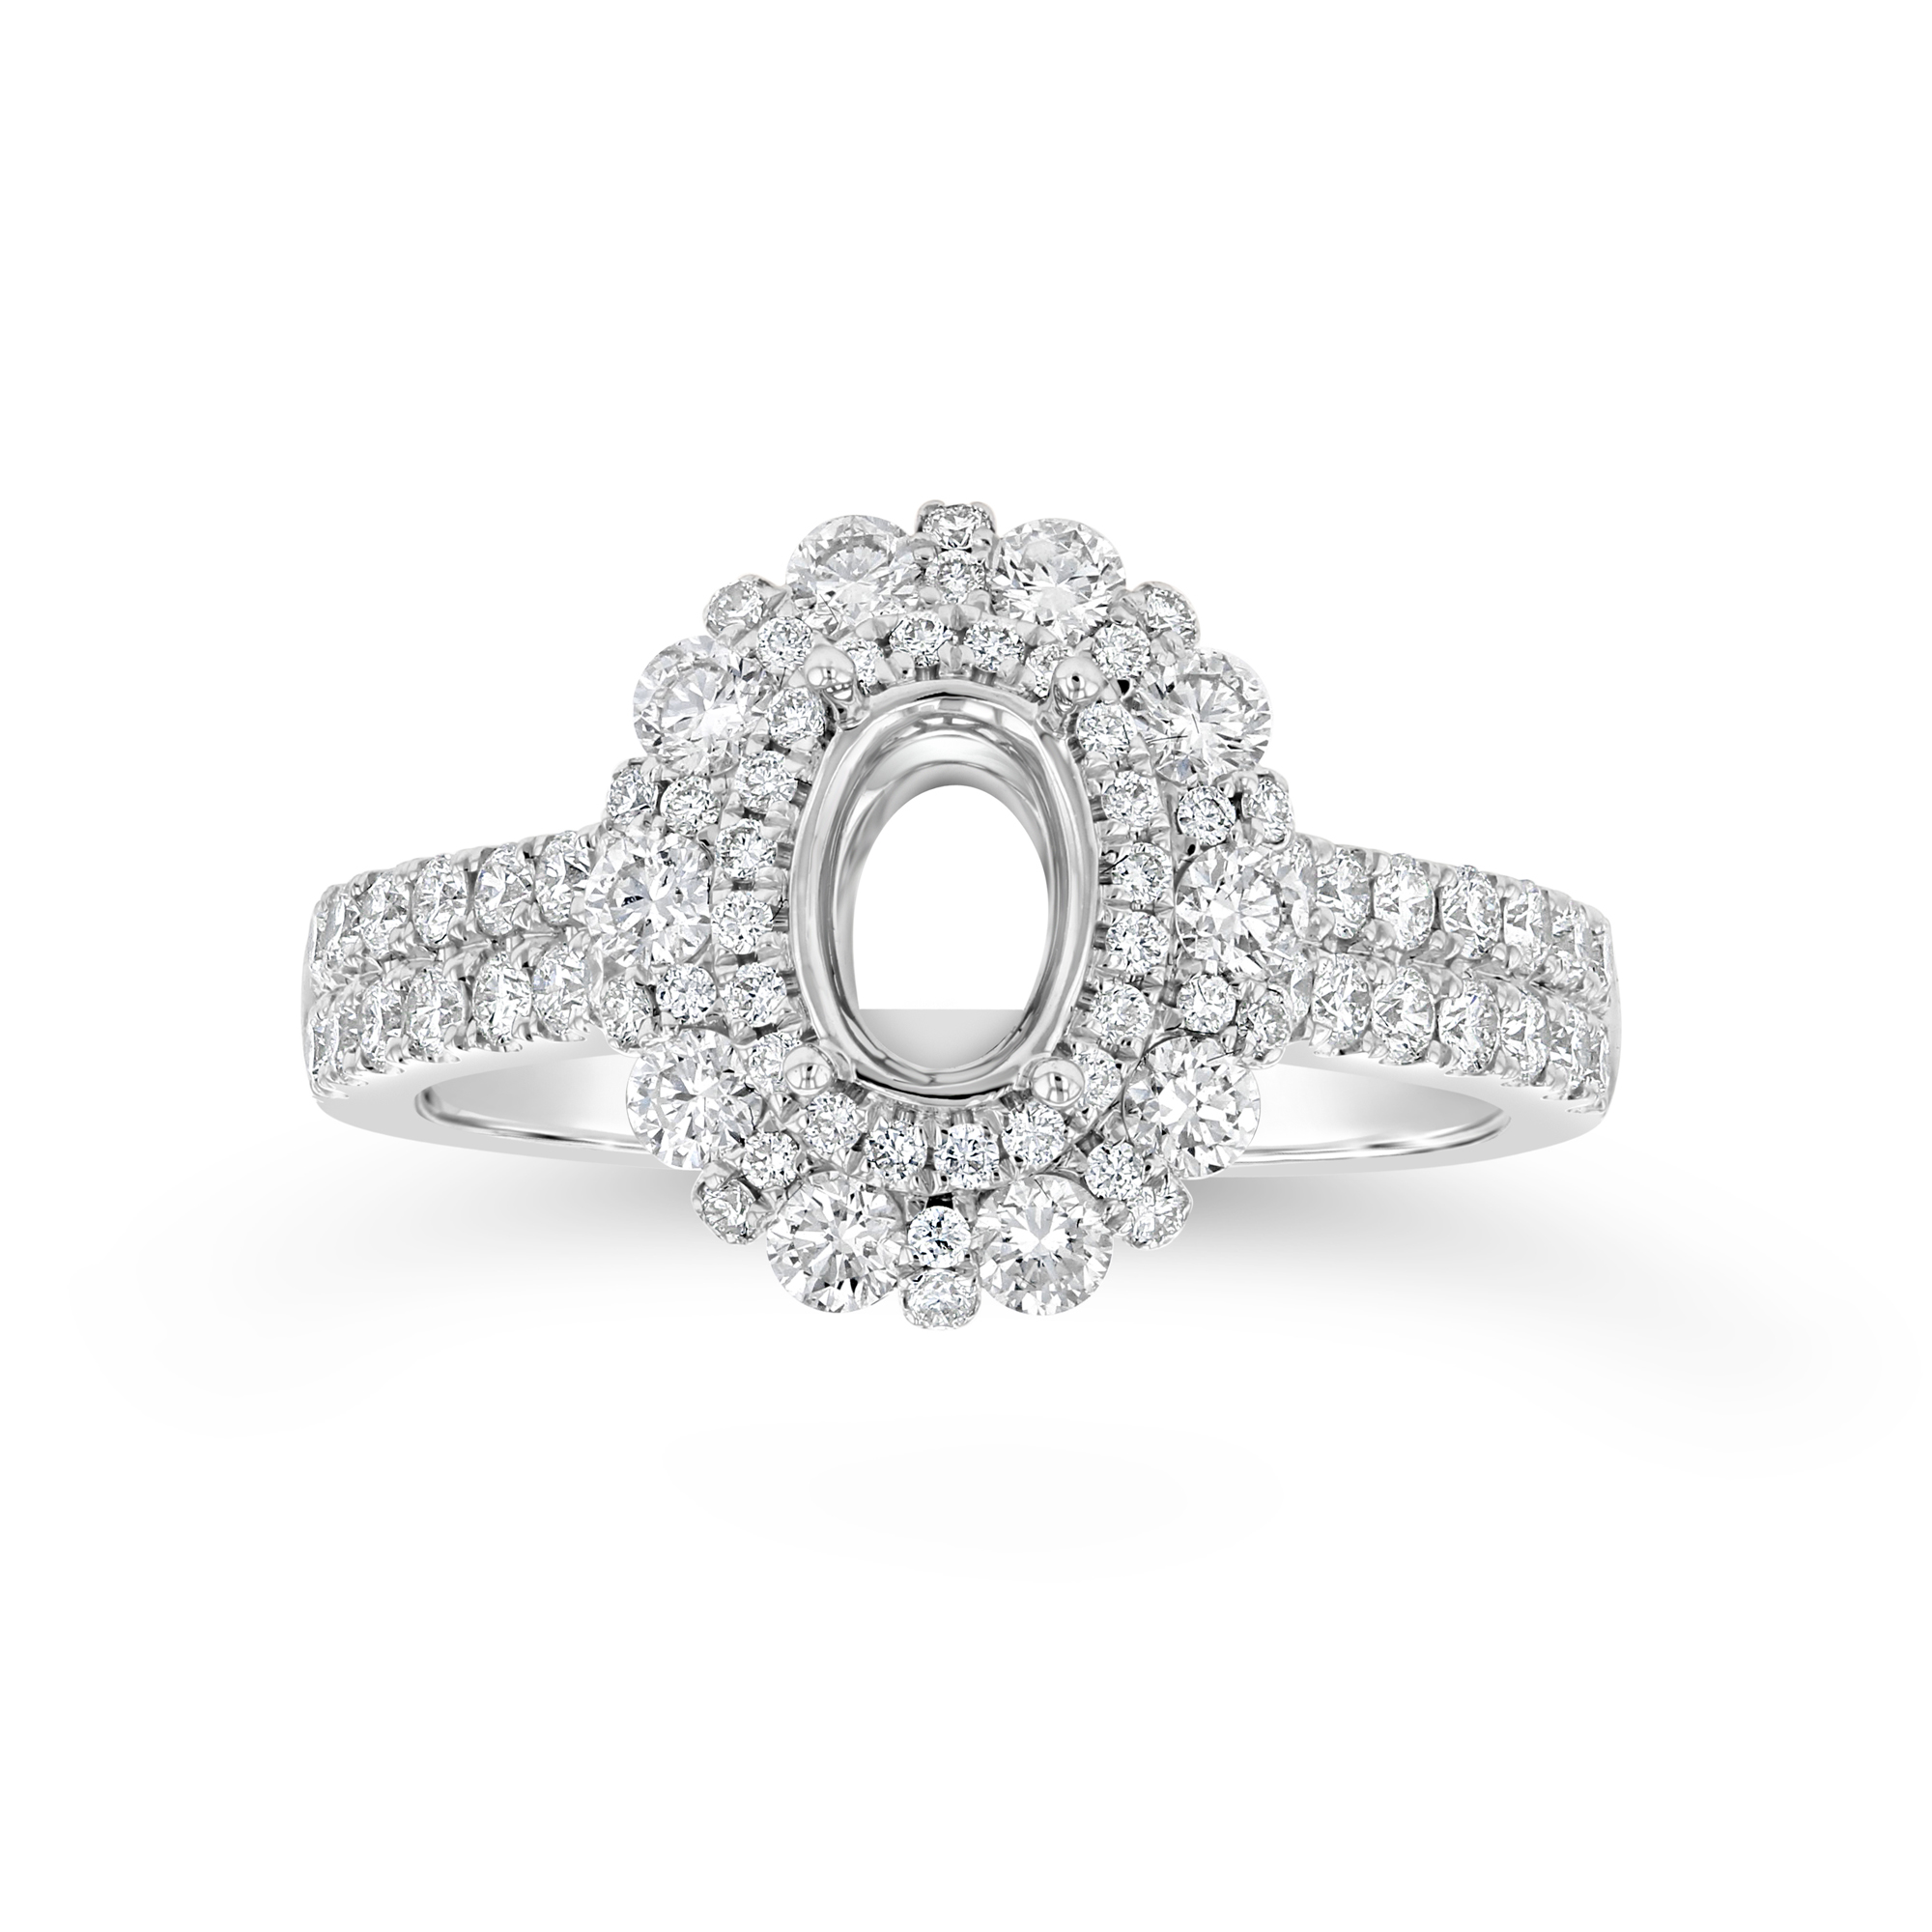 View 0.94ctw Diamond Double Halo Semi Mount Ring in 18k White Gold